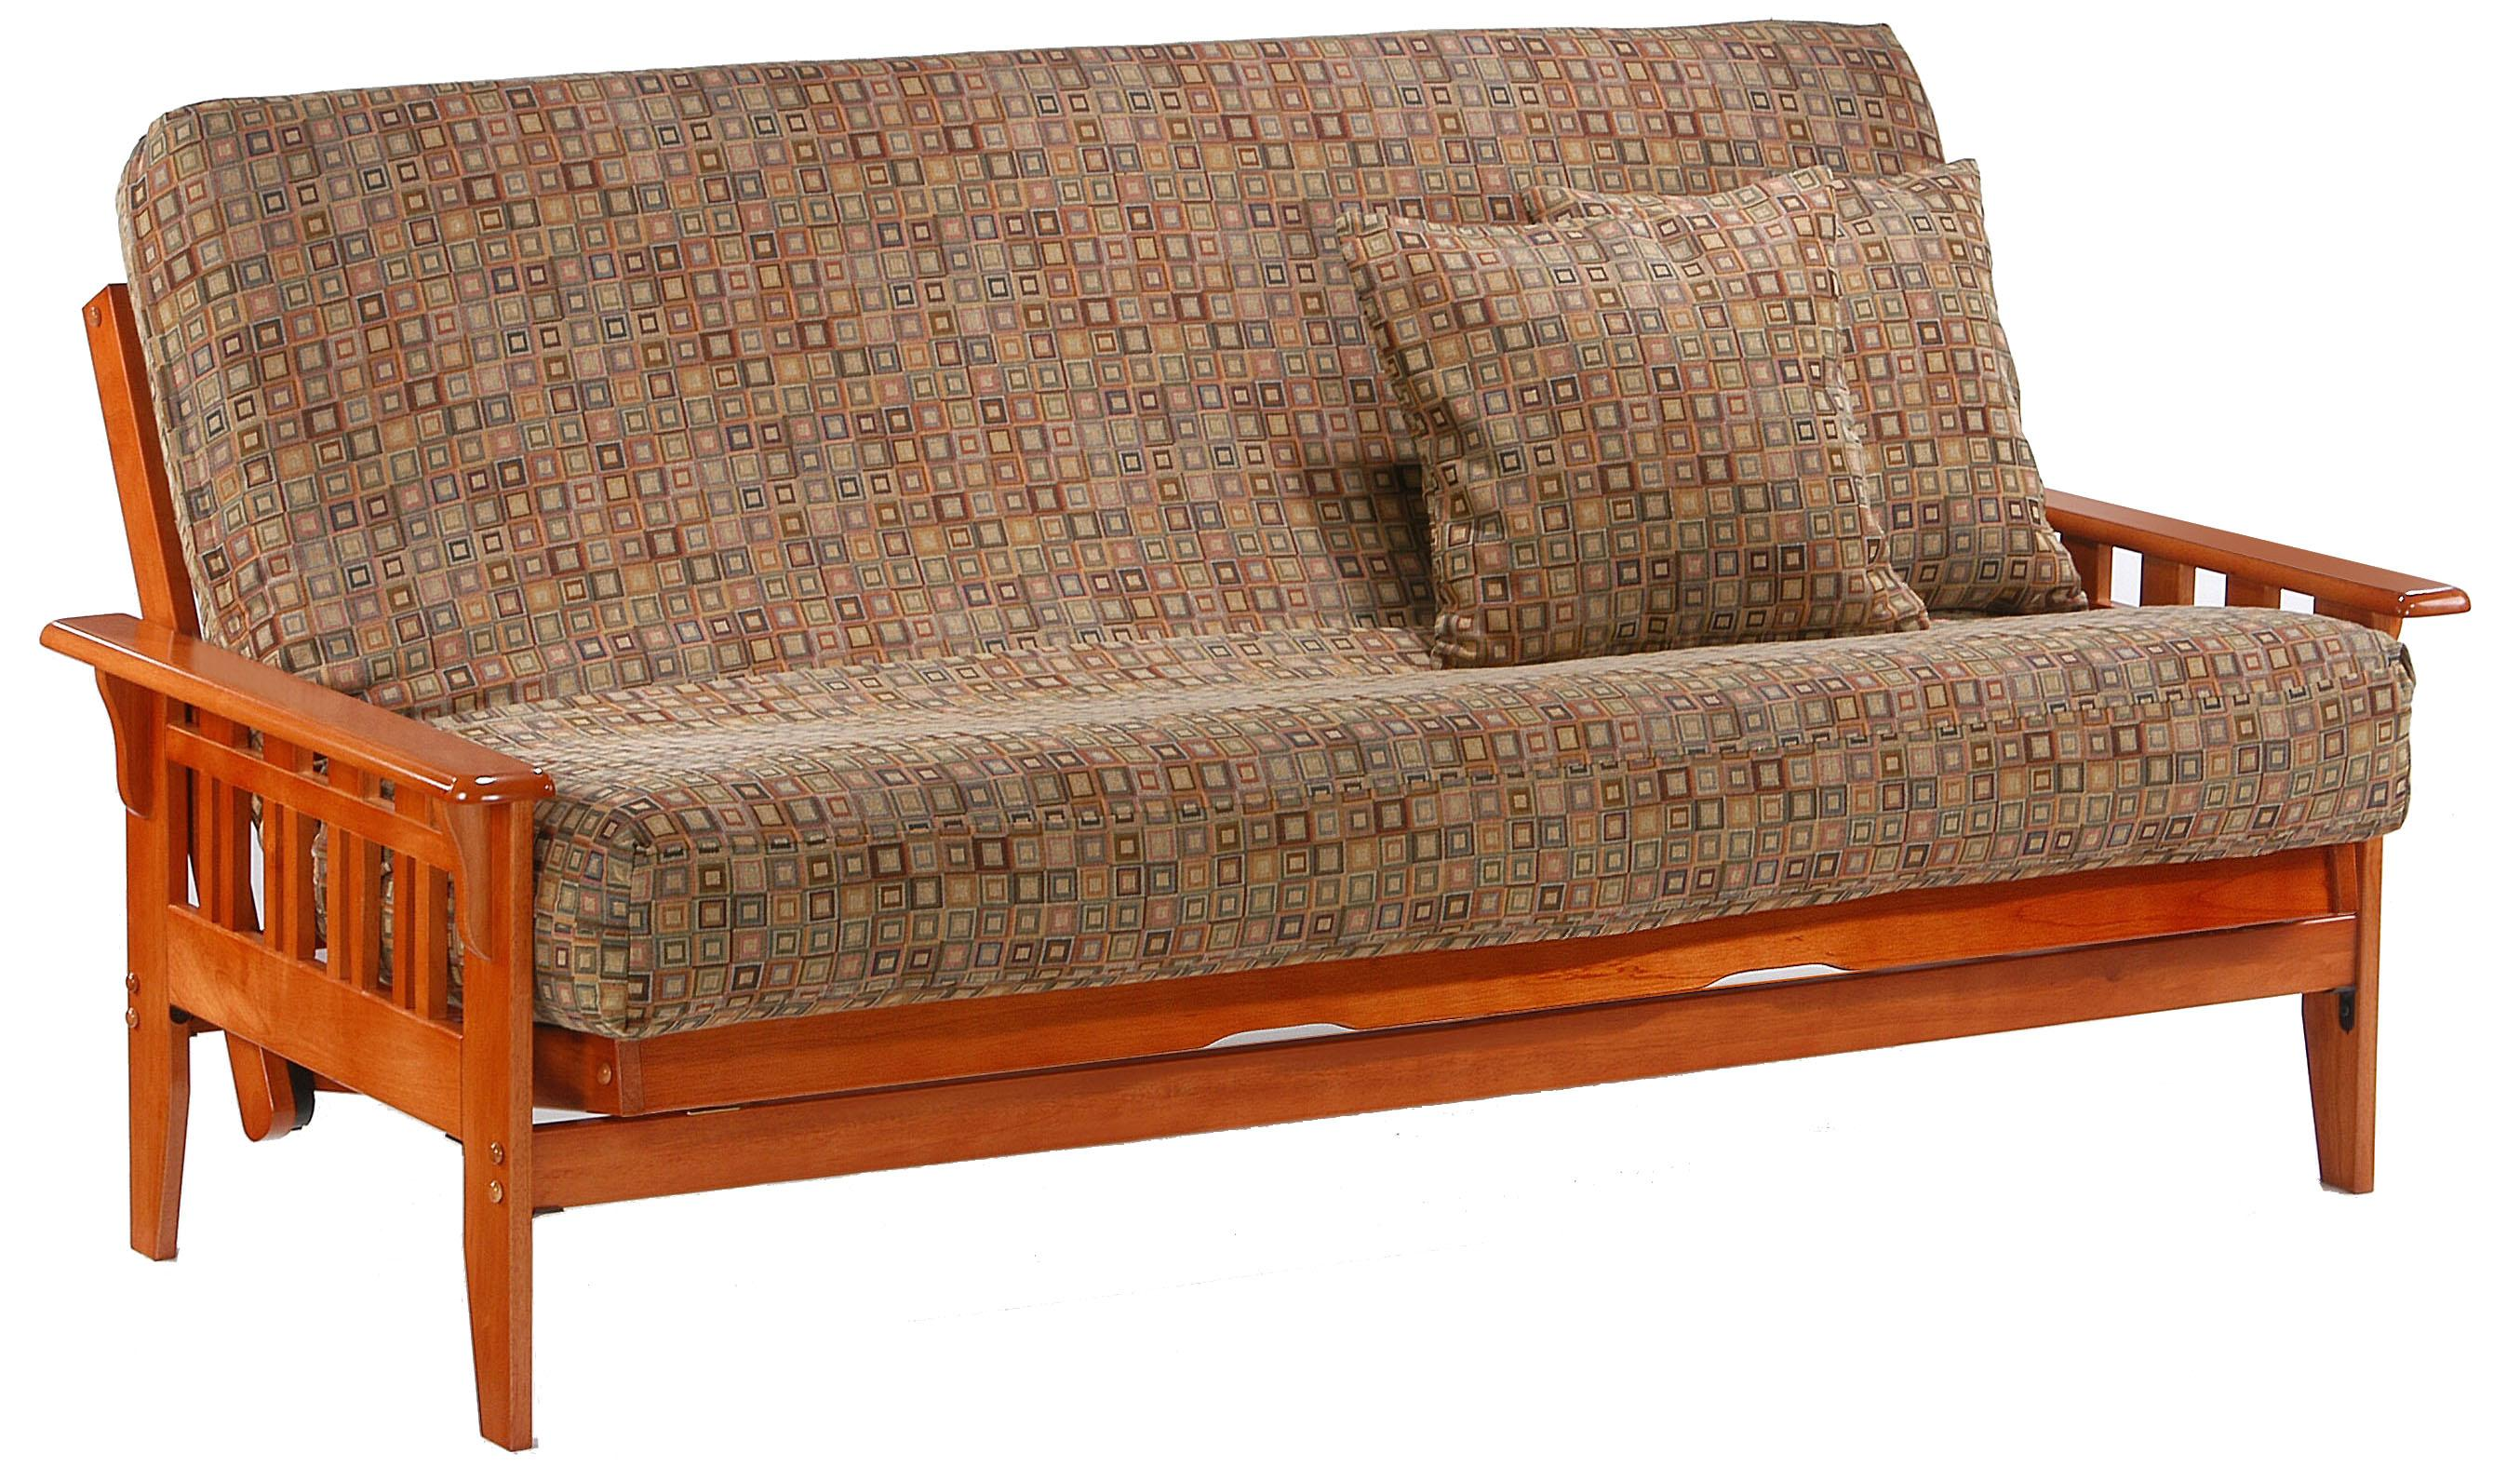 Kingston Teak Queen Size Futon by Night & Day Furniture at Furniture and ApplianceMart